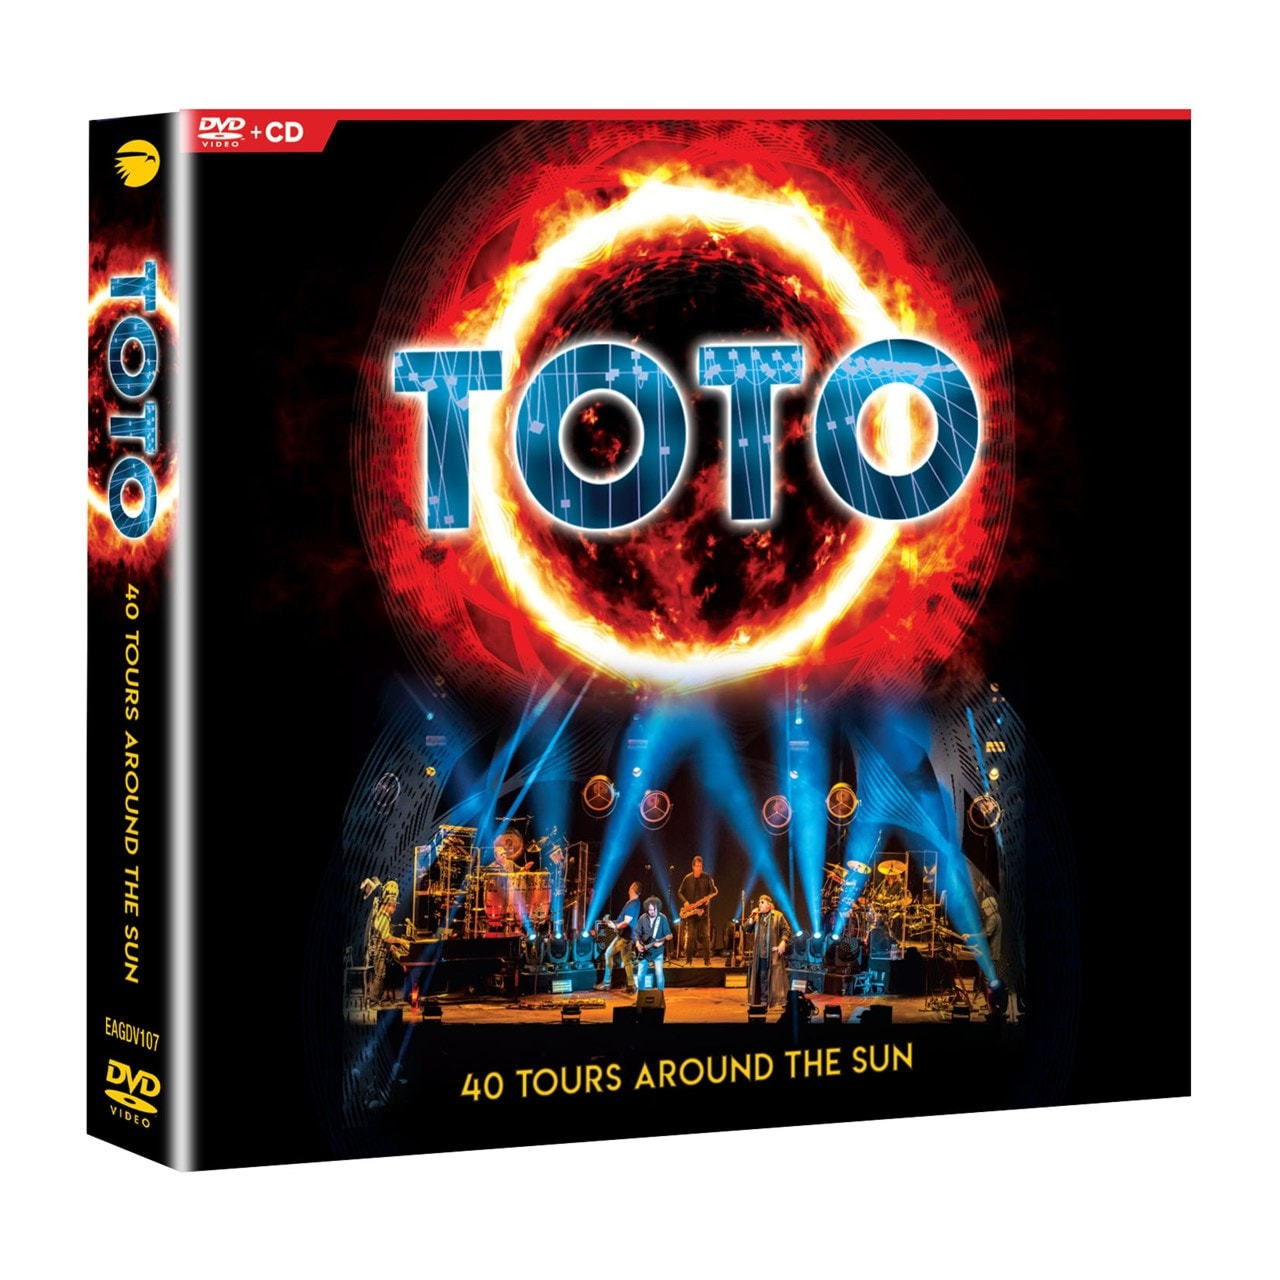 Toto: 40 Tours Around the Sun - 1